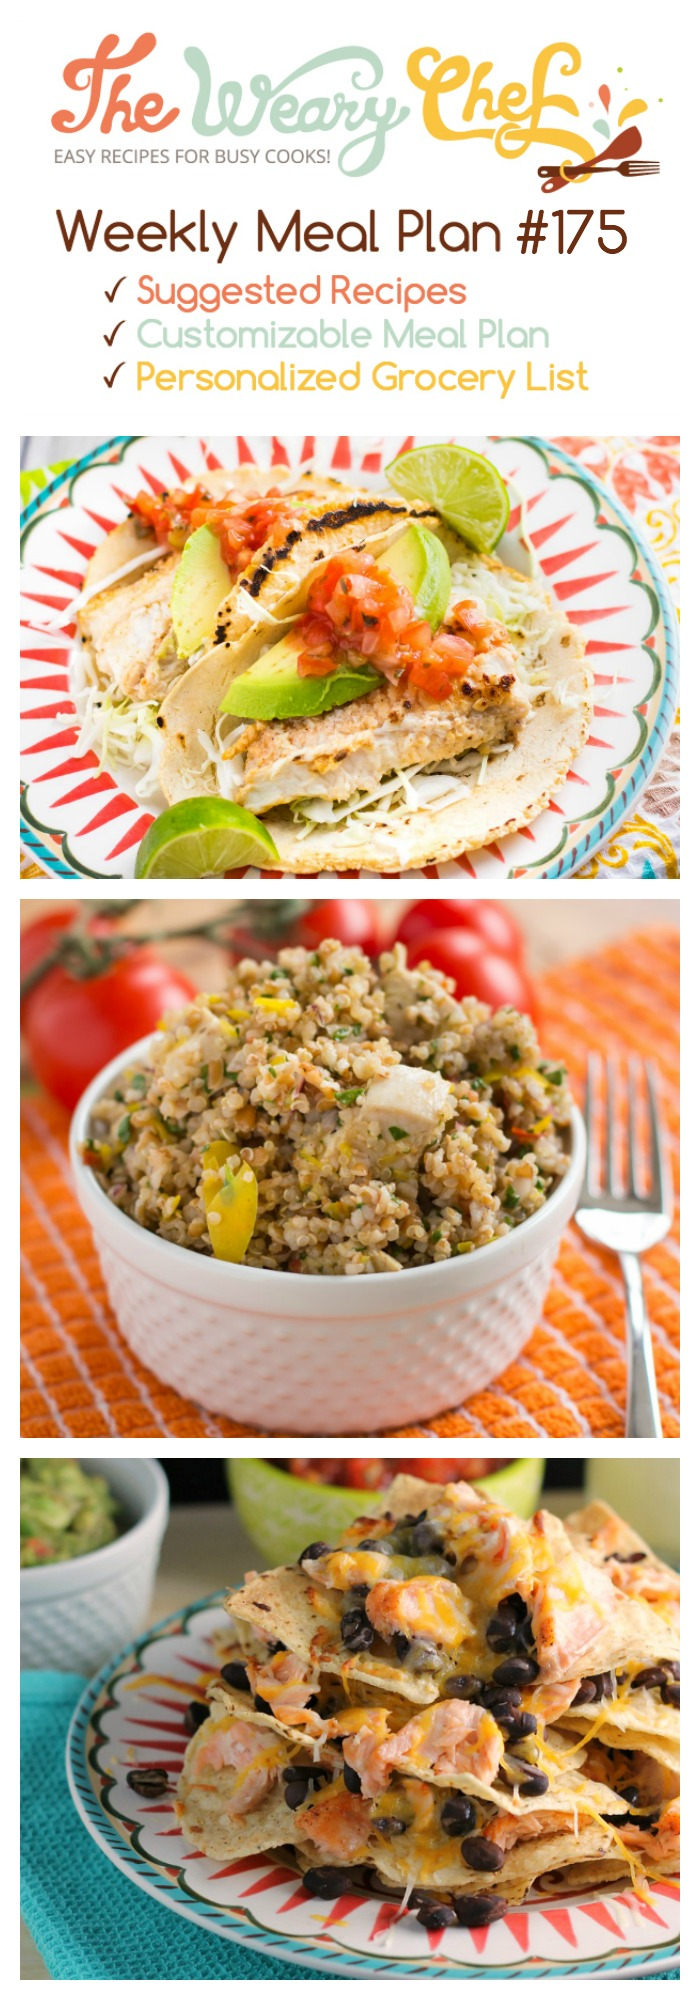 This week's meal plan features fish tacos, summer salad with whole grains, red beans and rice, and lots more!